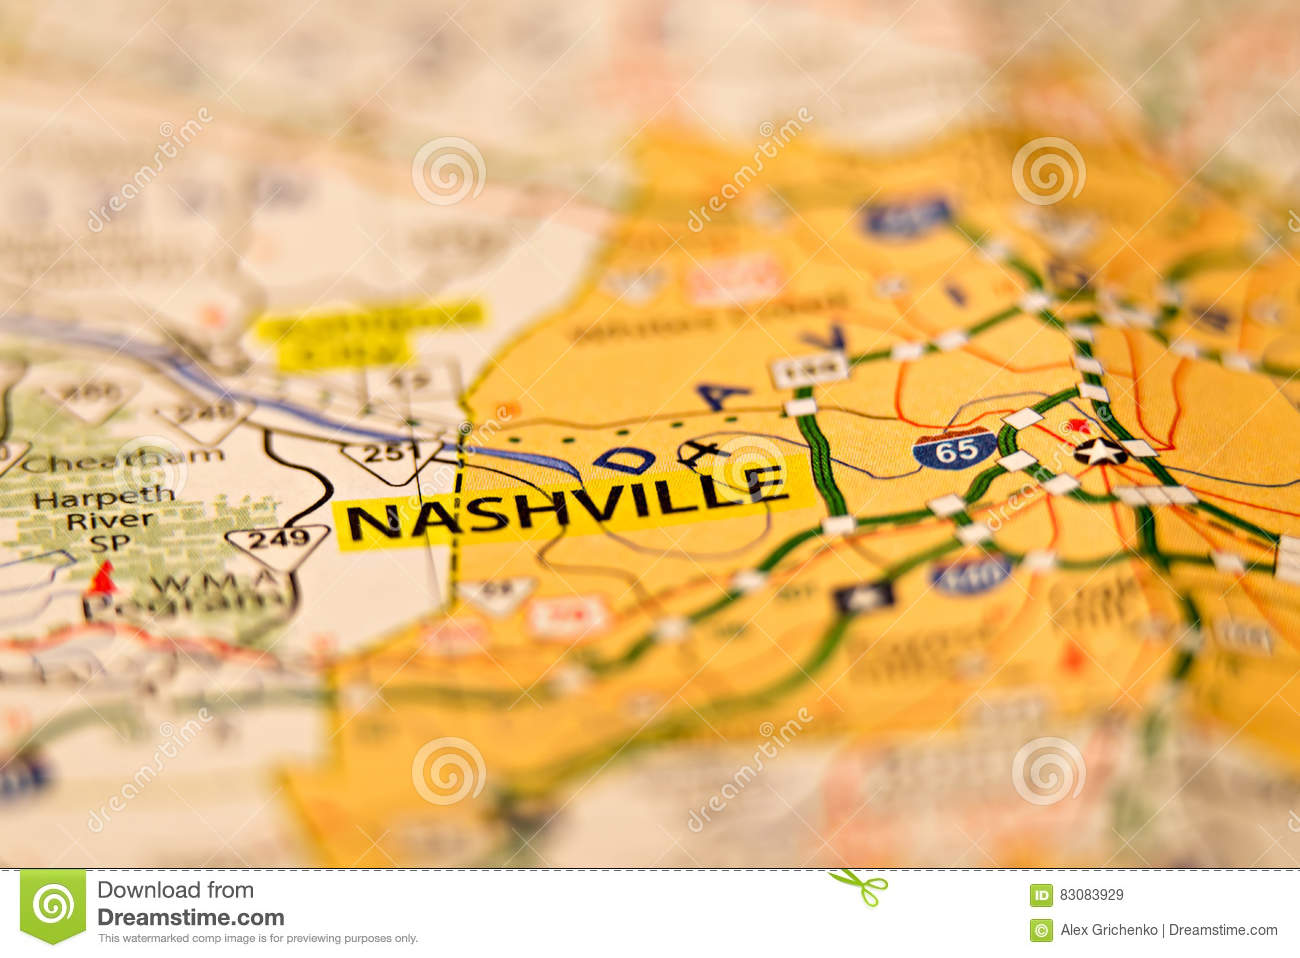 Nashville Tn Area Map Photo Stock Image - Image of macro, industry ...